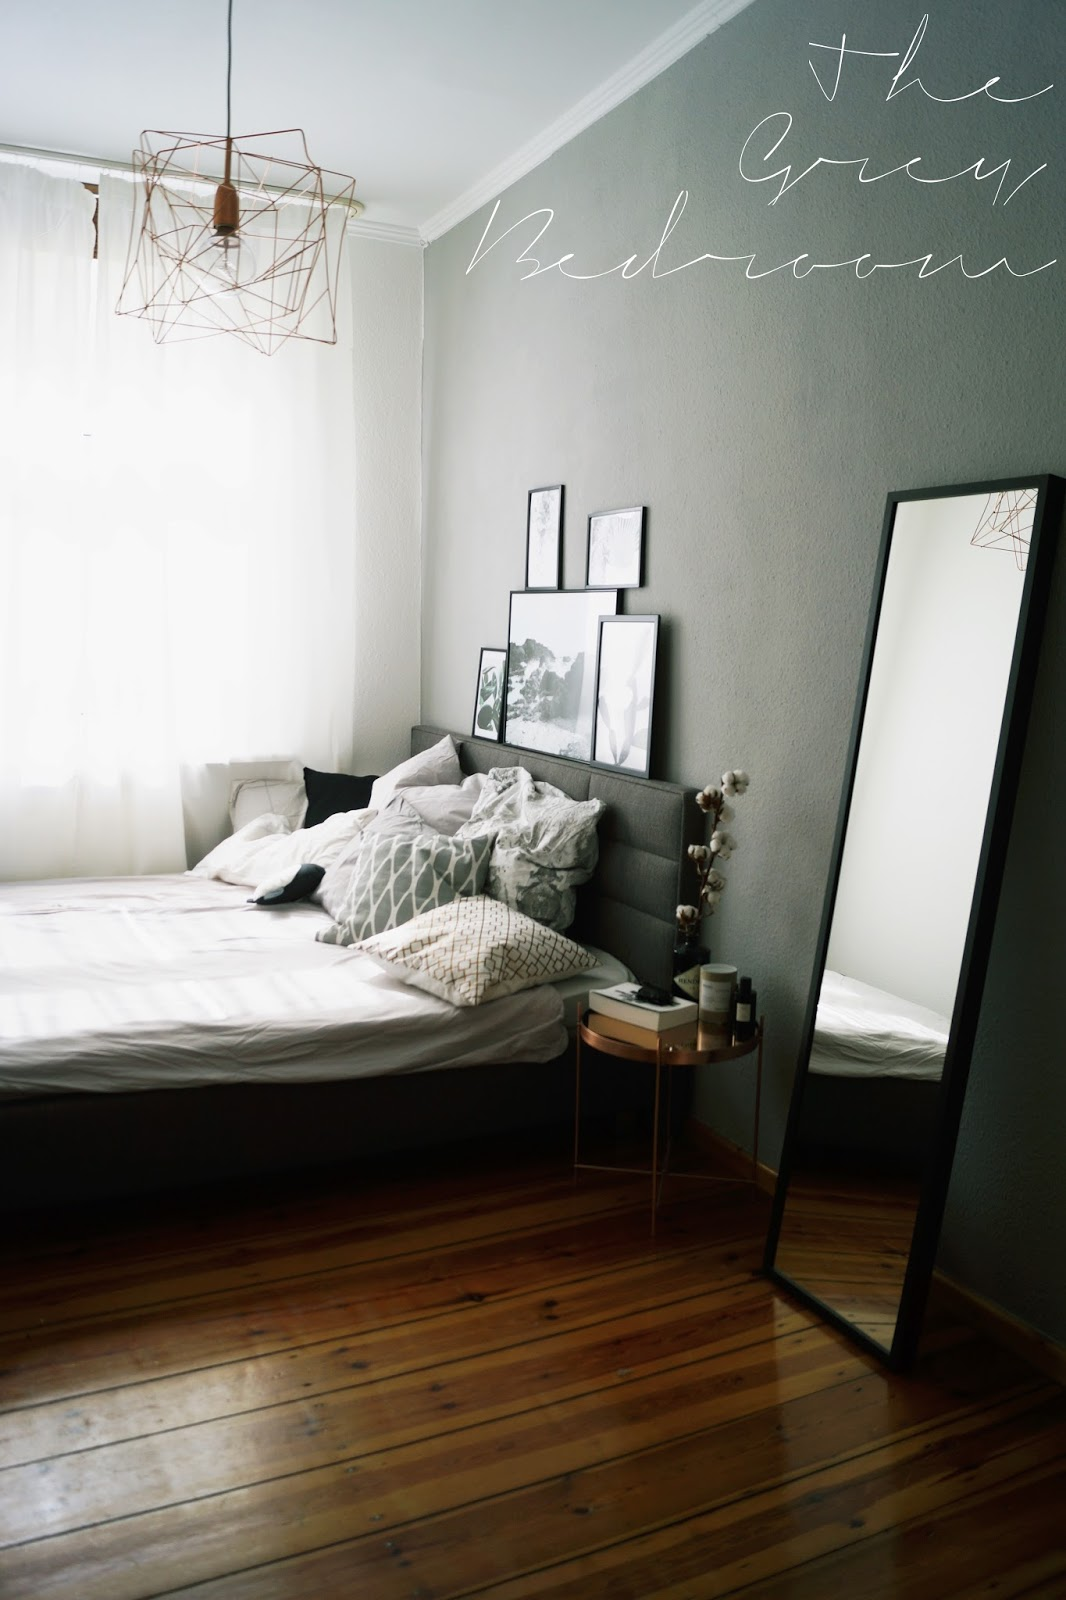 C r u e l t h i n g for Cozy minimalist interior